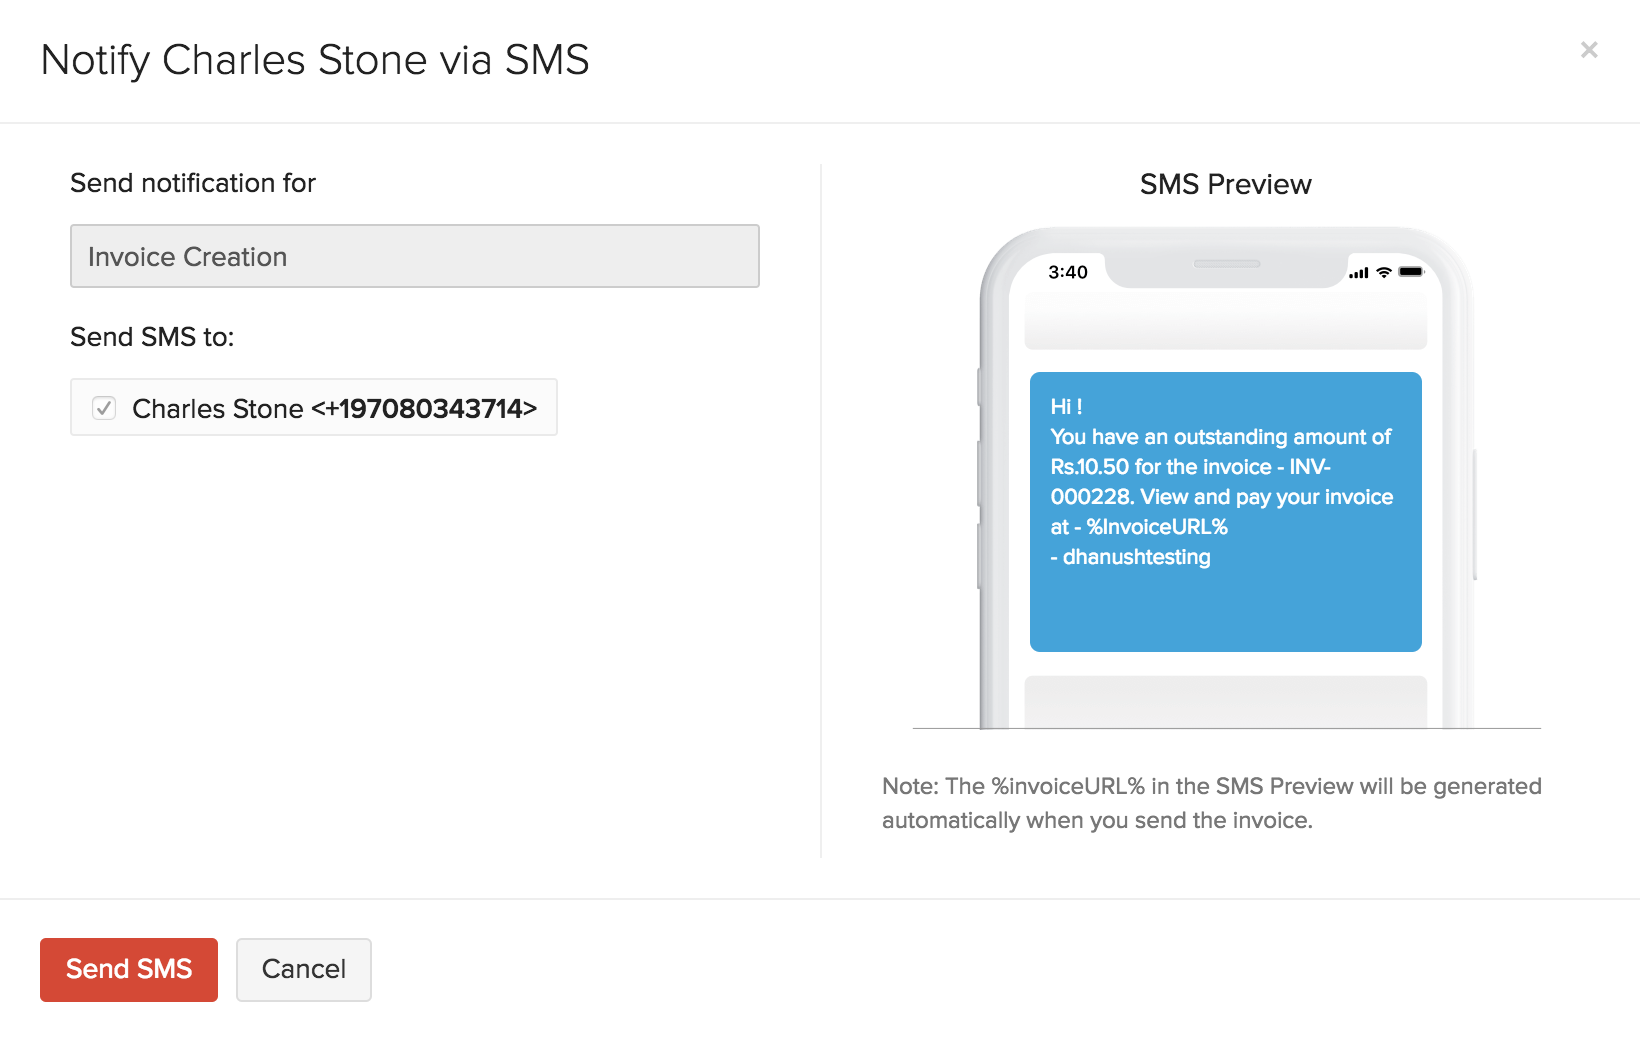 Preview SMS Notification